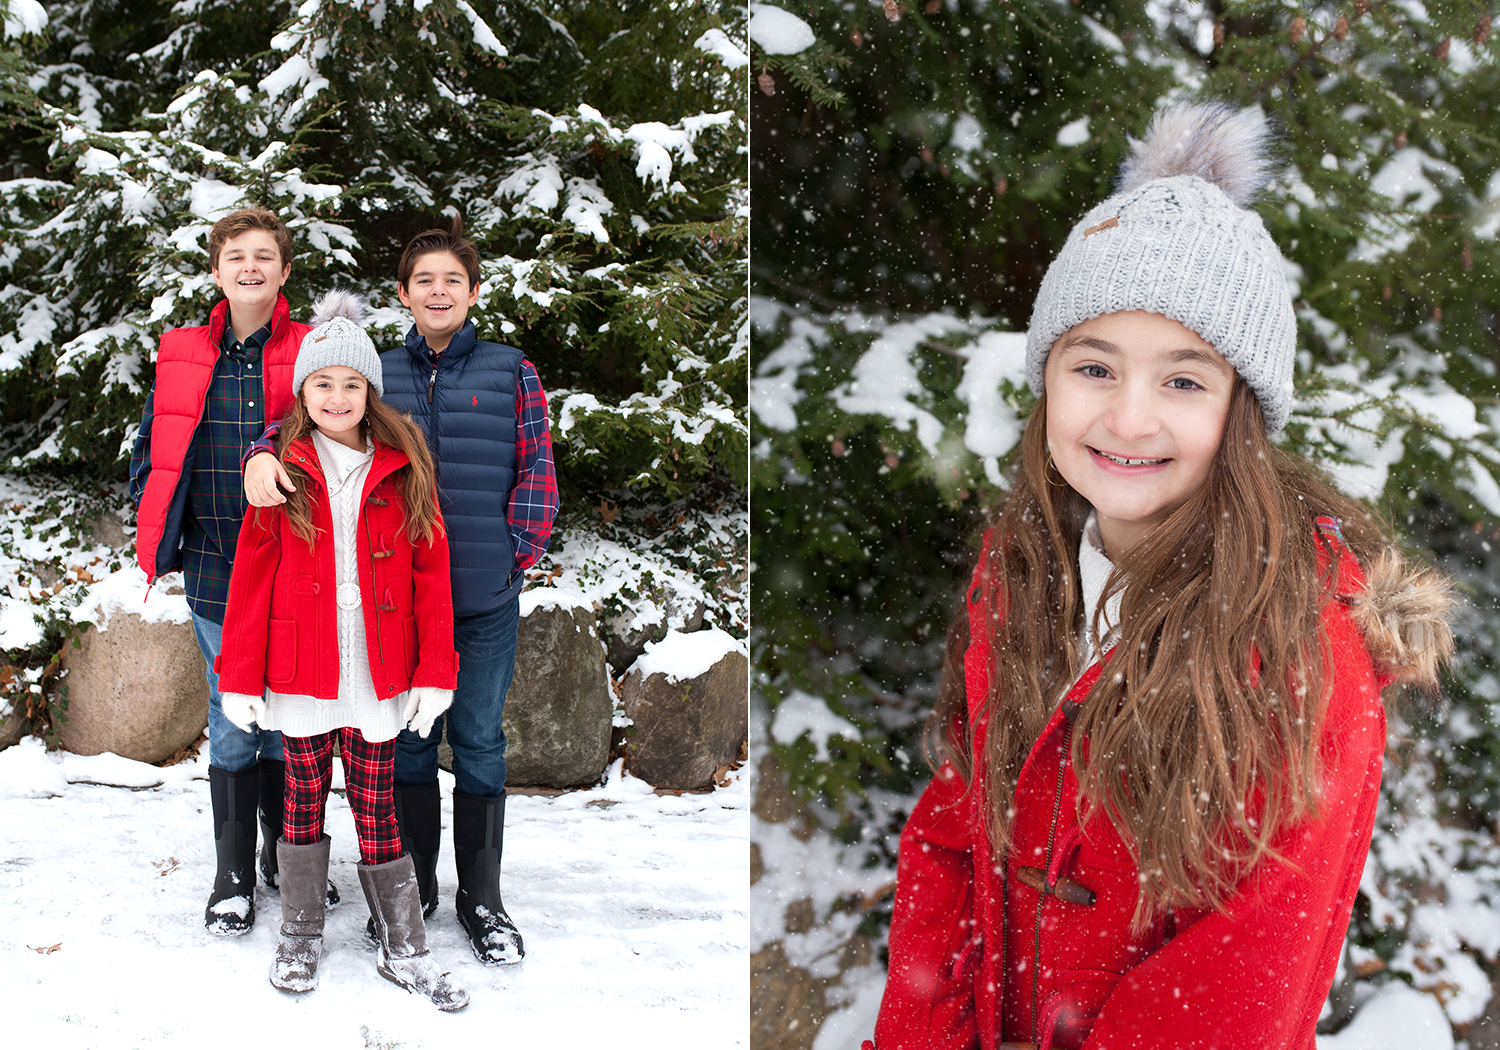 Winter portrait session in the snow for families grand rapids michigan